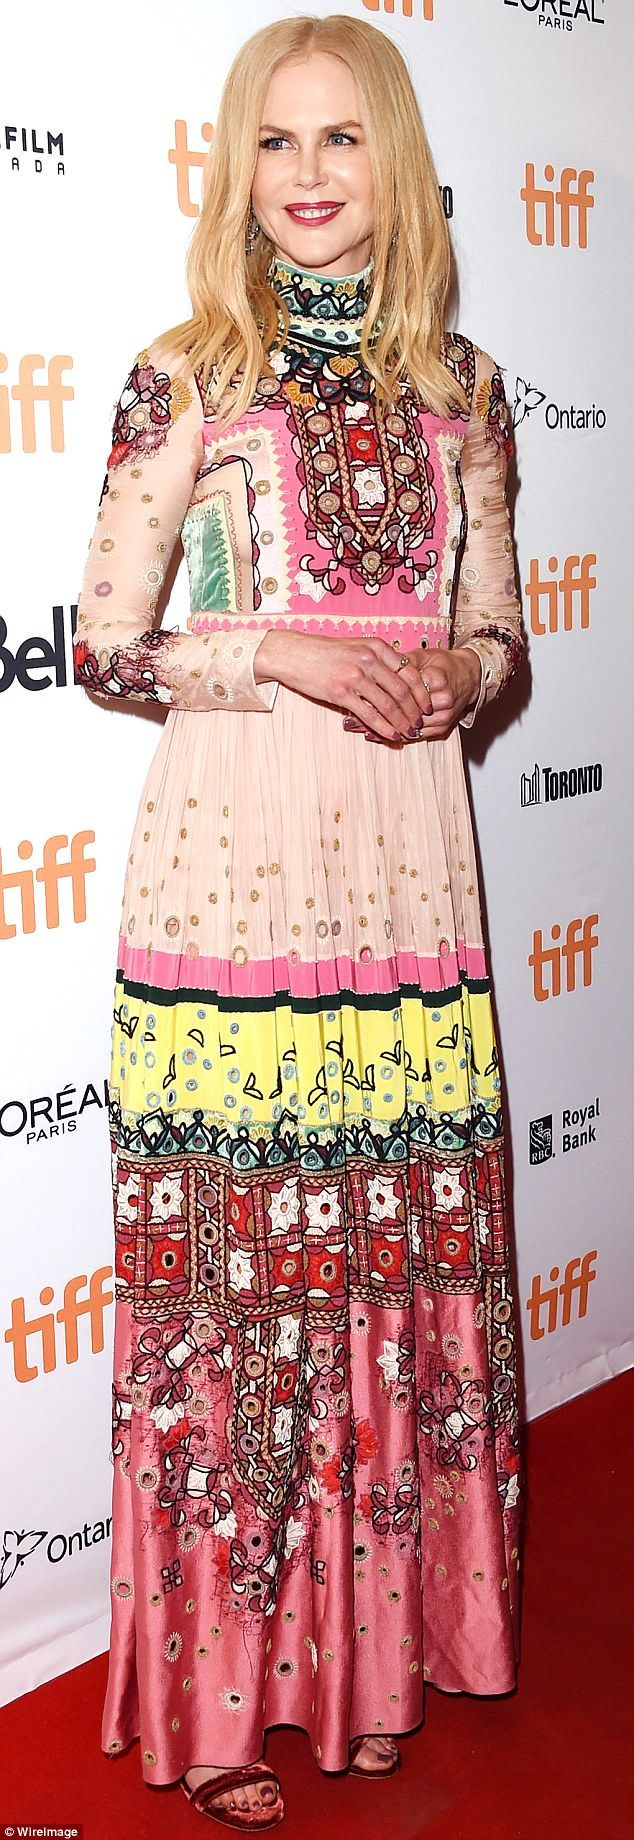 Nicole Kidman makes a statement in bright patterned dress